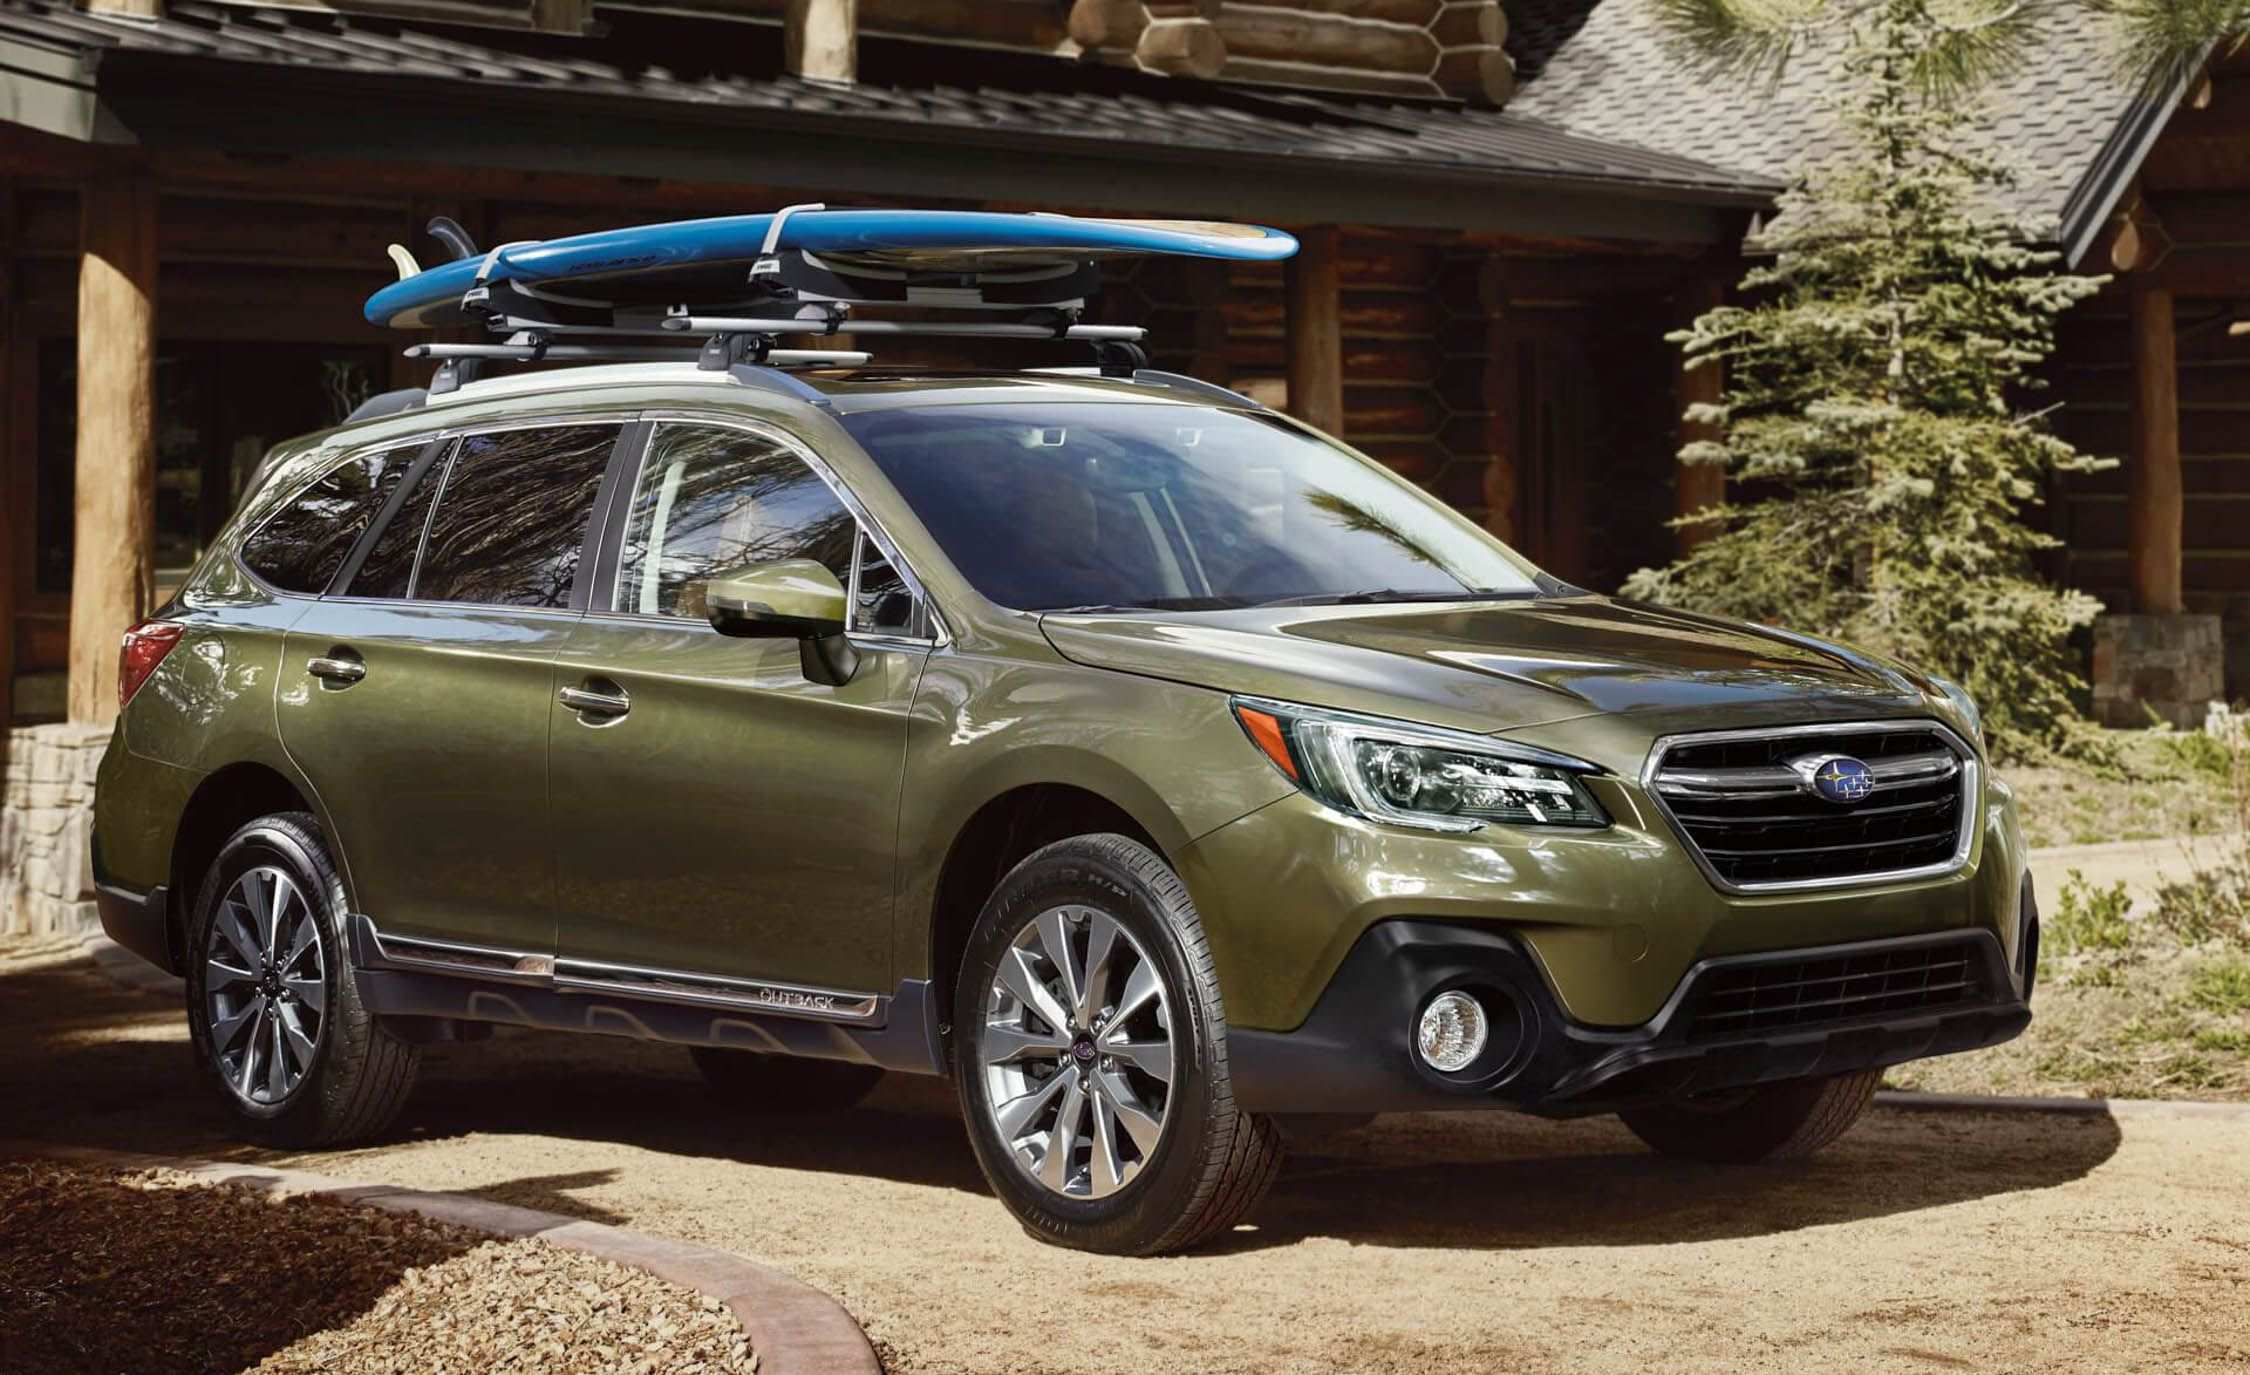 88 A 2020 Subaru Outback Mpg Research New